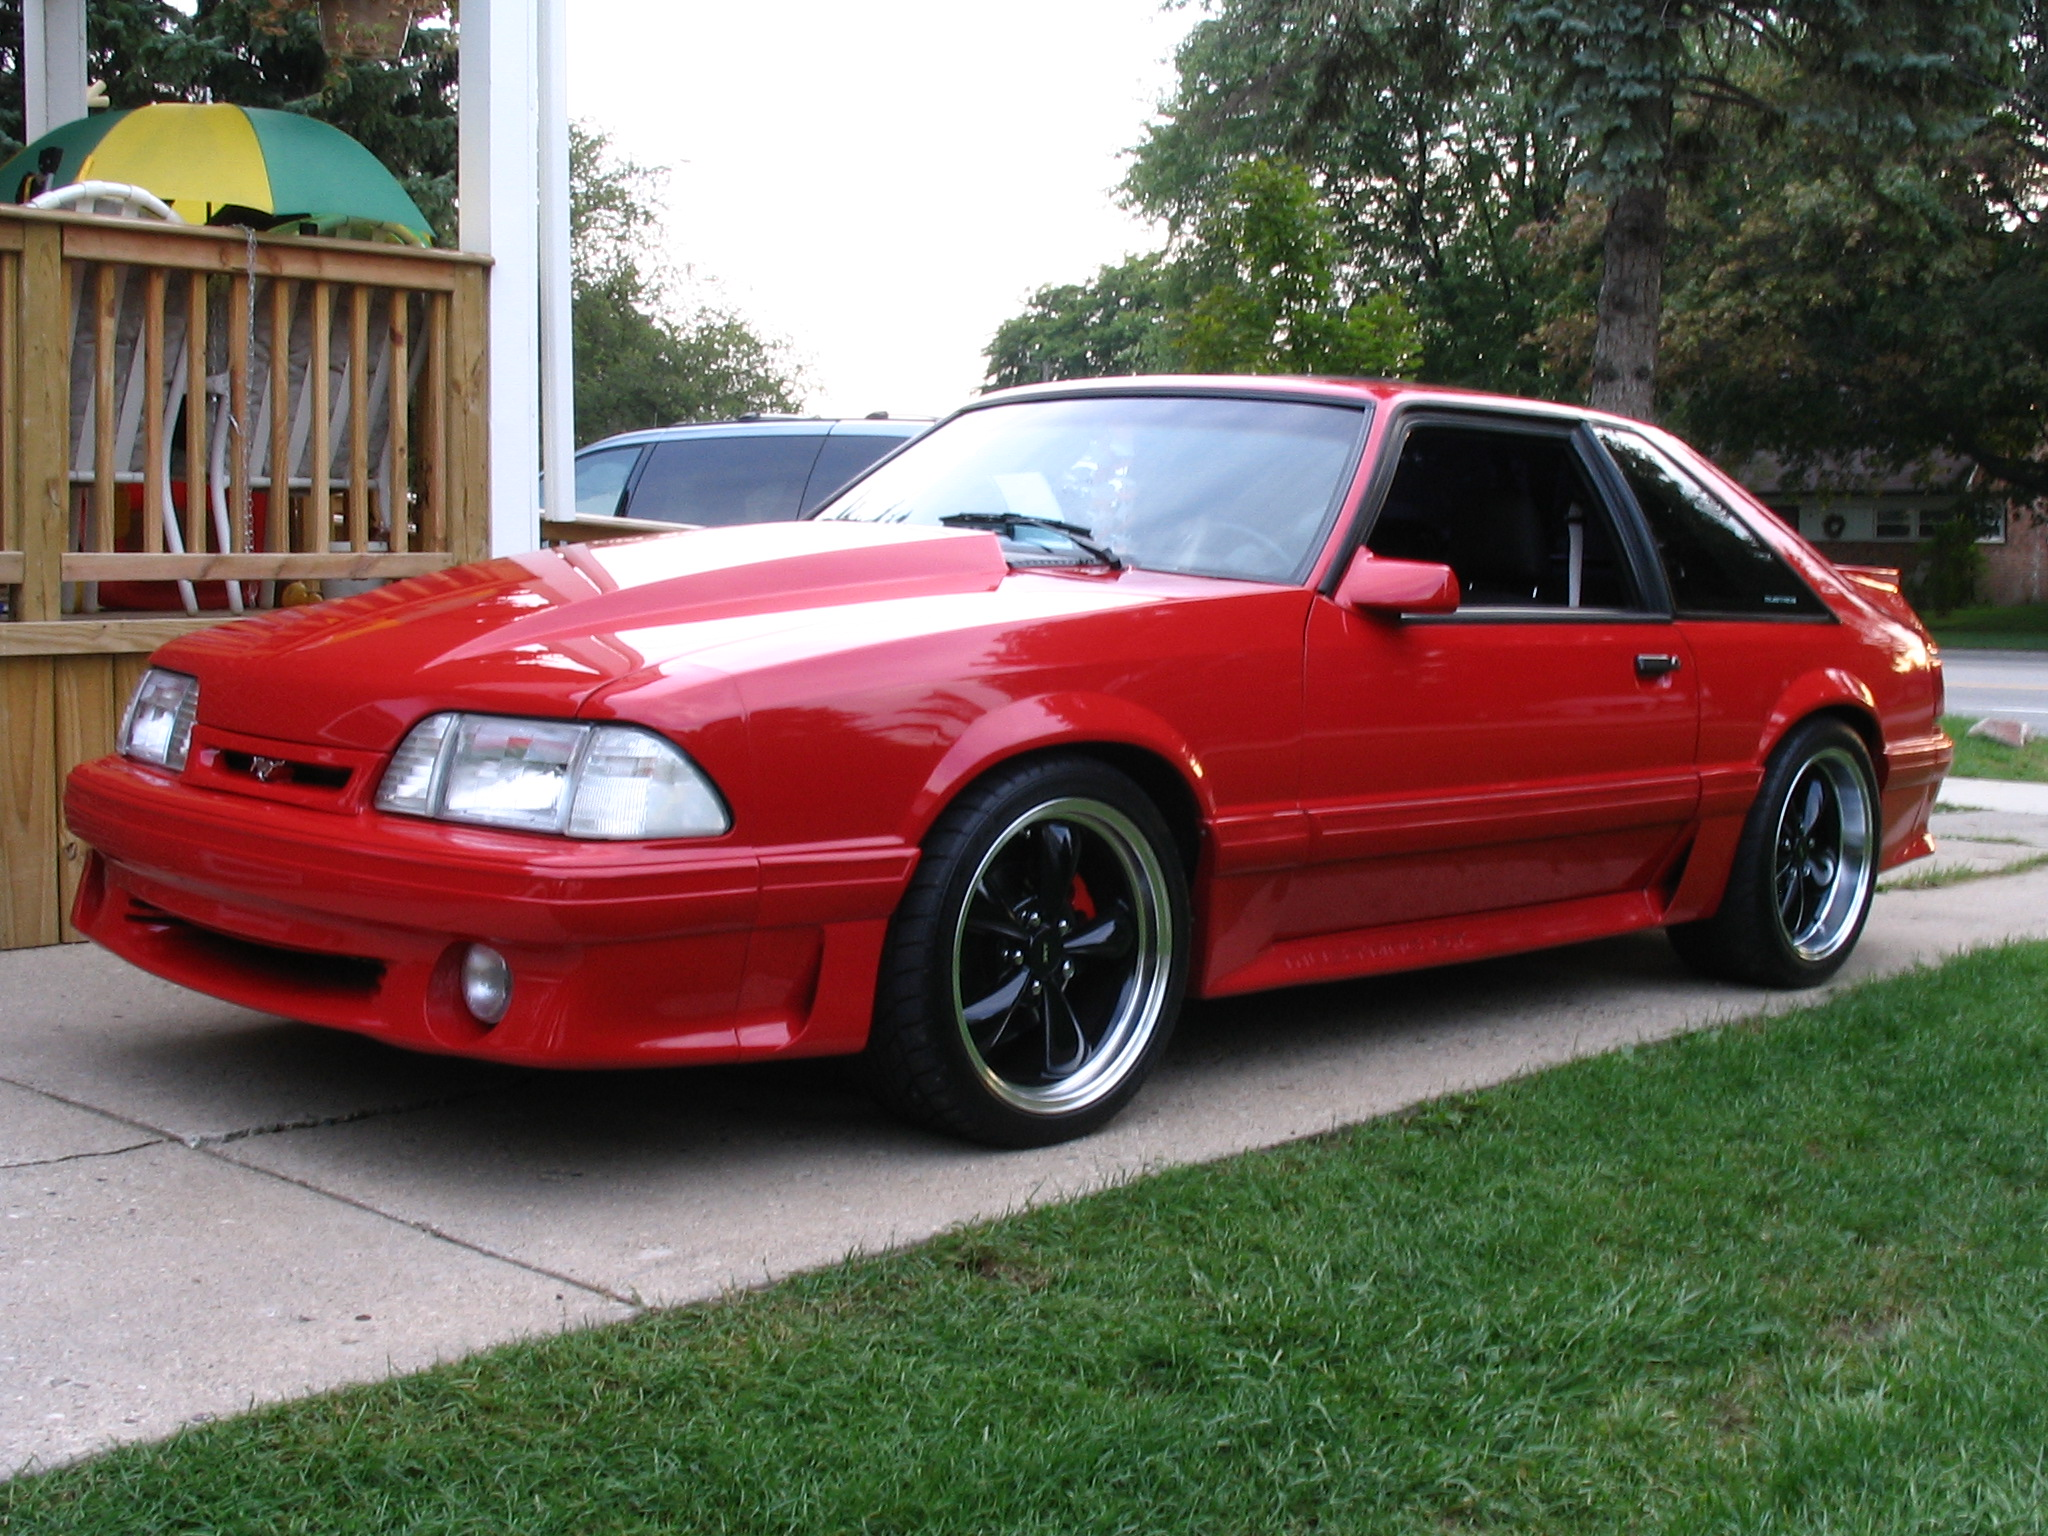 foxbody mustang 4 reasons to buy one today. Black Bedroom Furniture Sets. Home Design Ideas